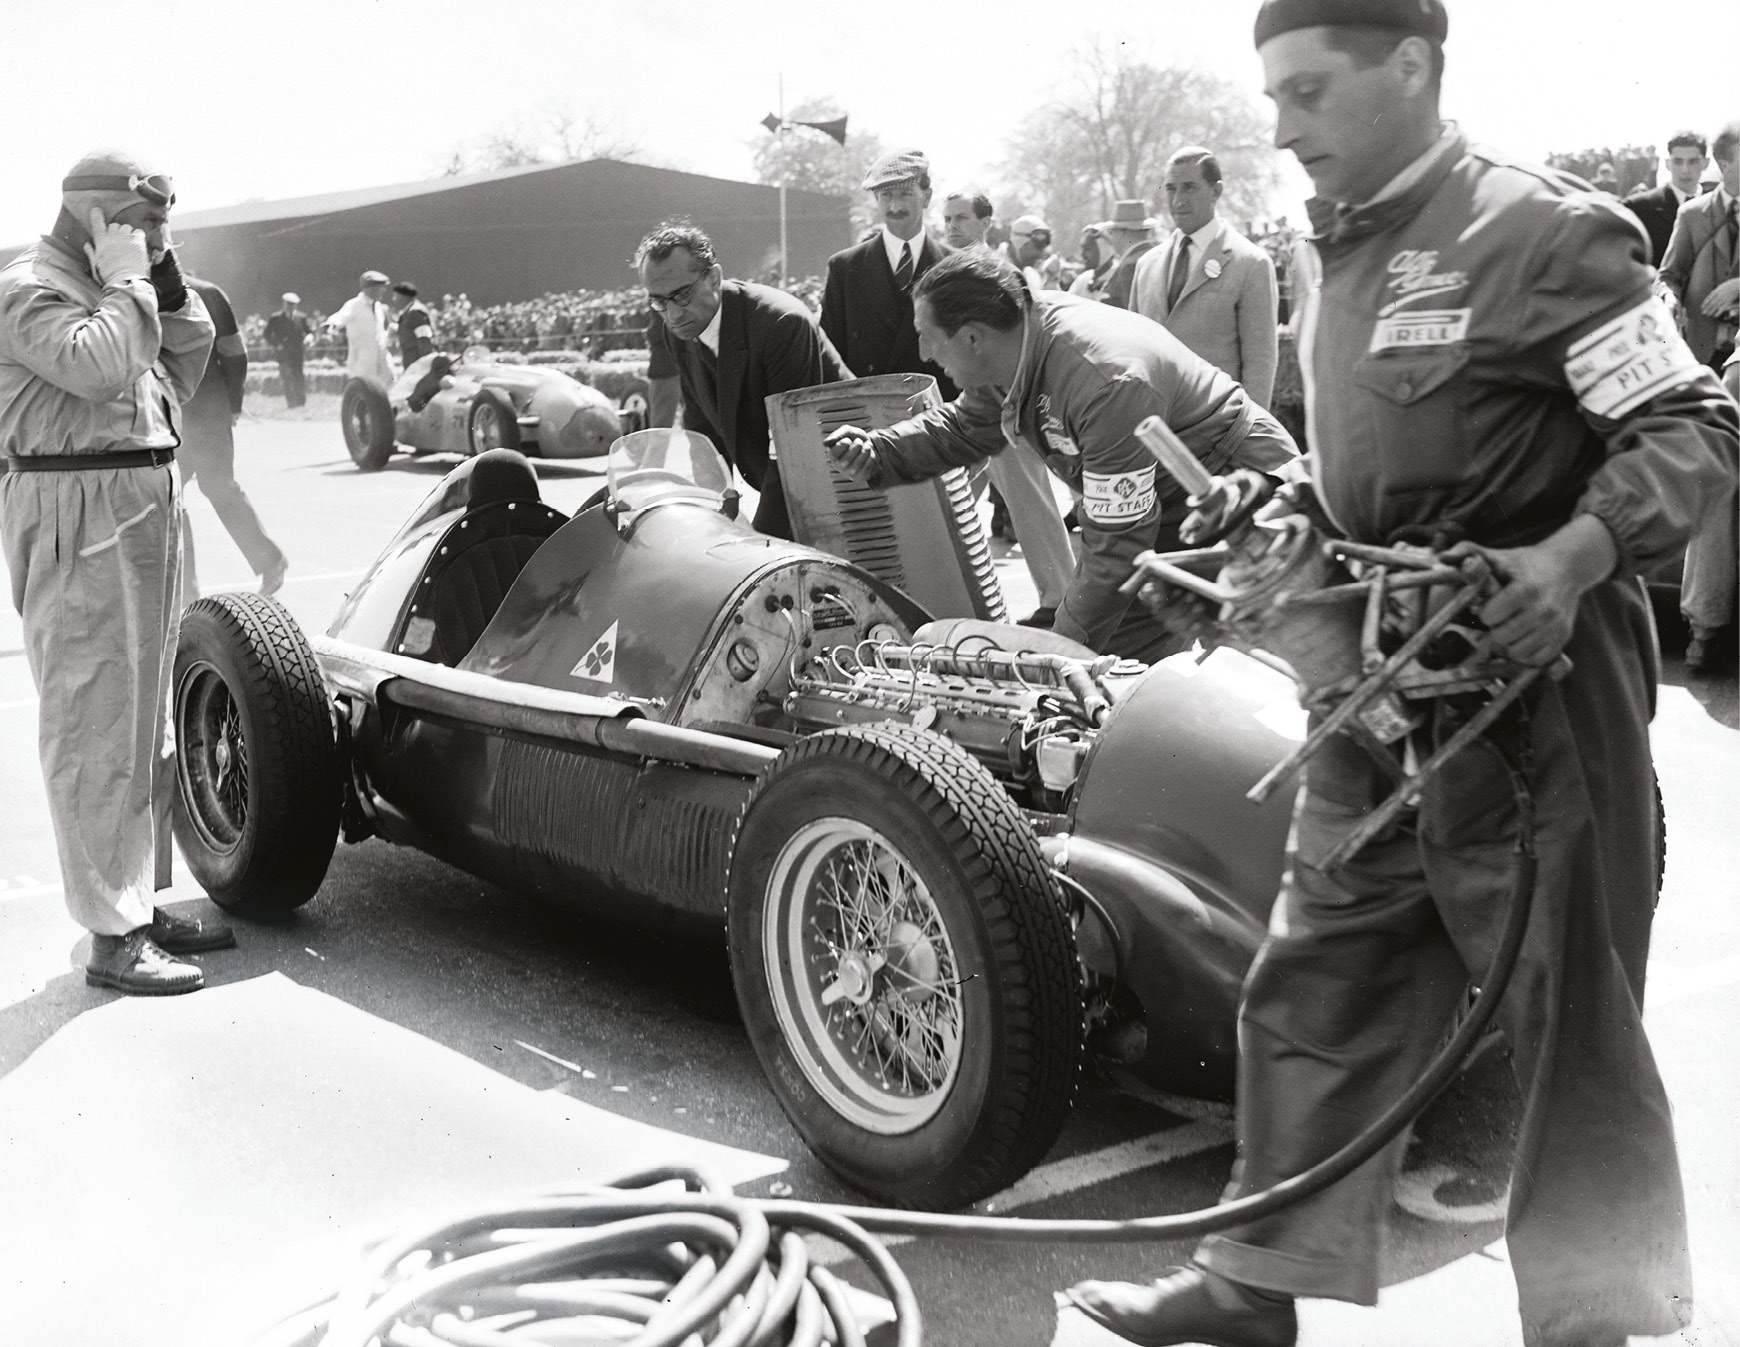 Fagioli prepares as the crew starts his 158 on the 1950 Silverstone grid. He'll finish second to team-mate Farina